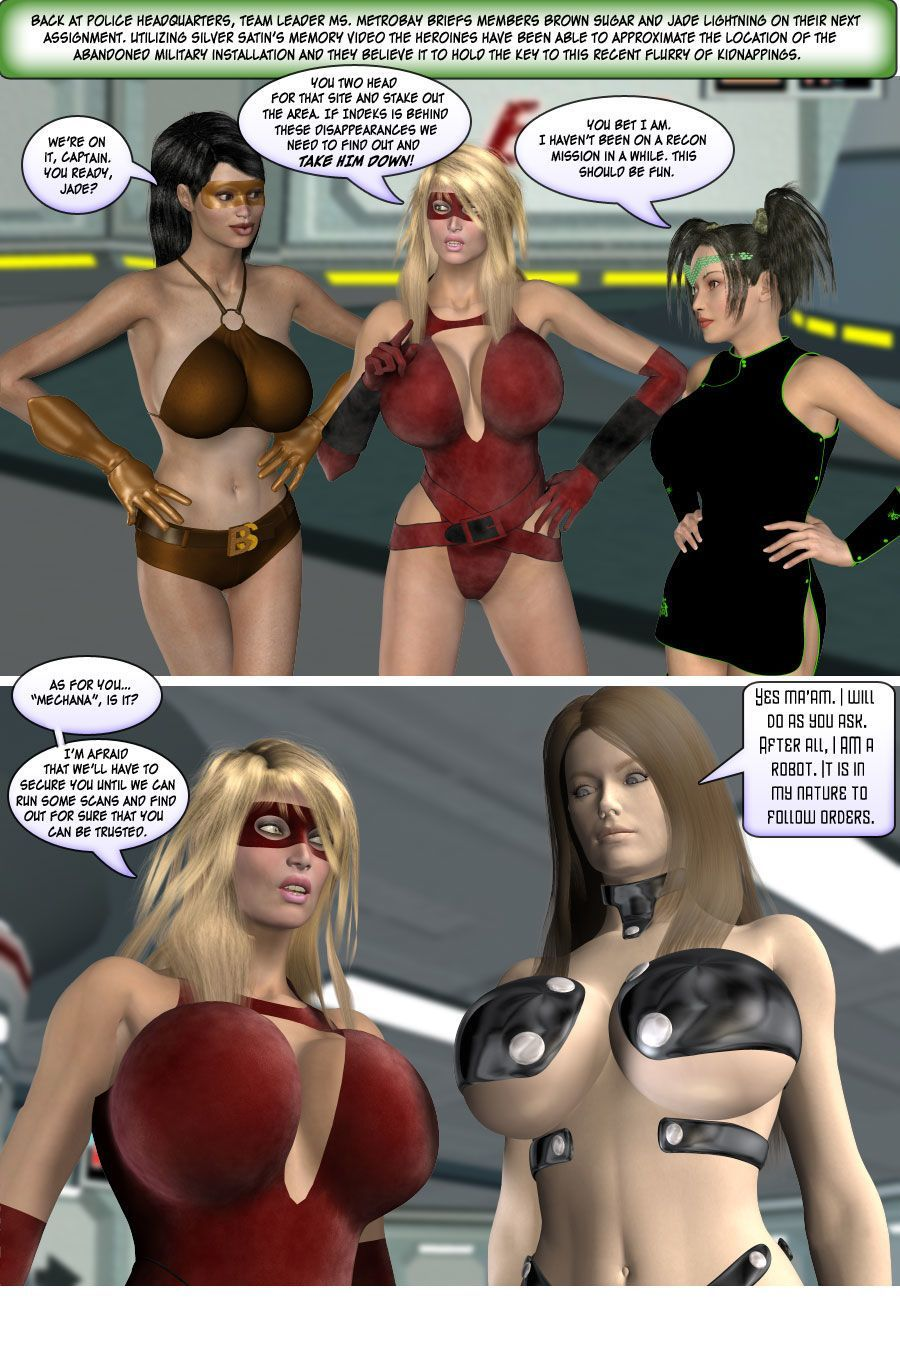 [Finister Foul] Superheroine Squad 1 - 23 - part 5